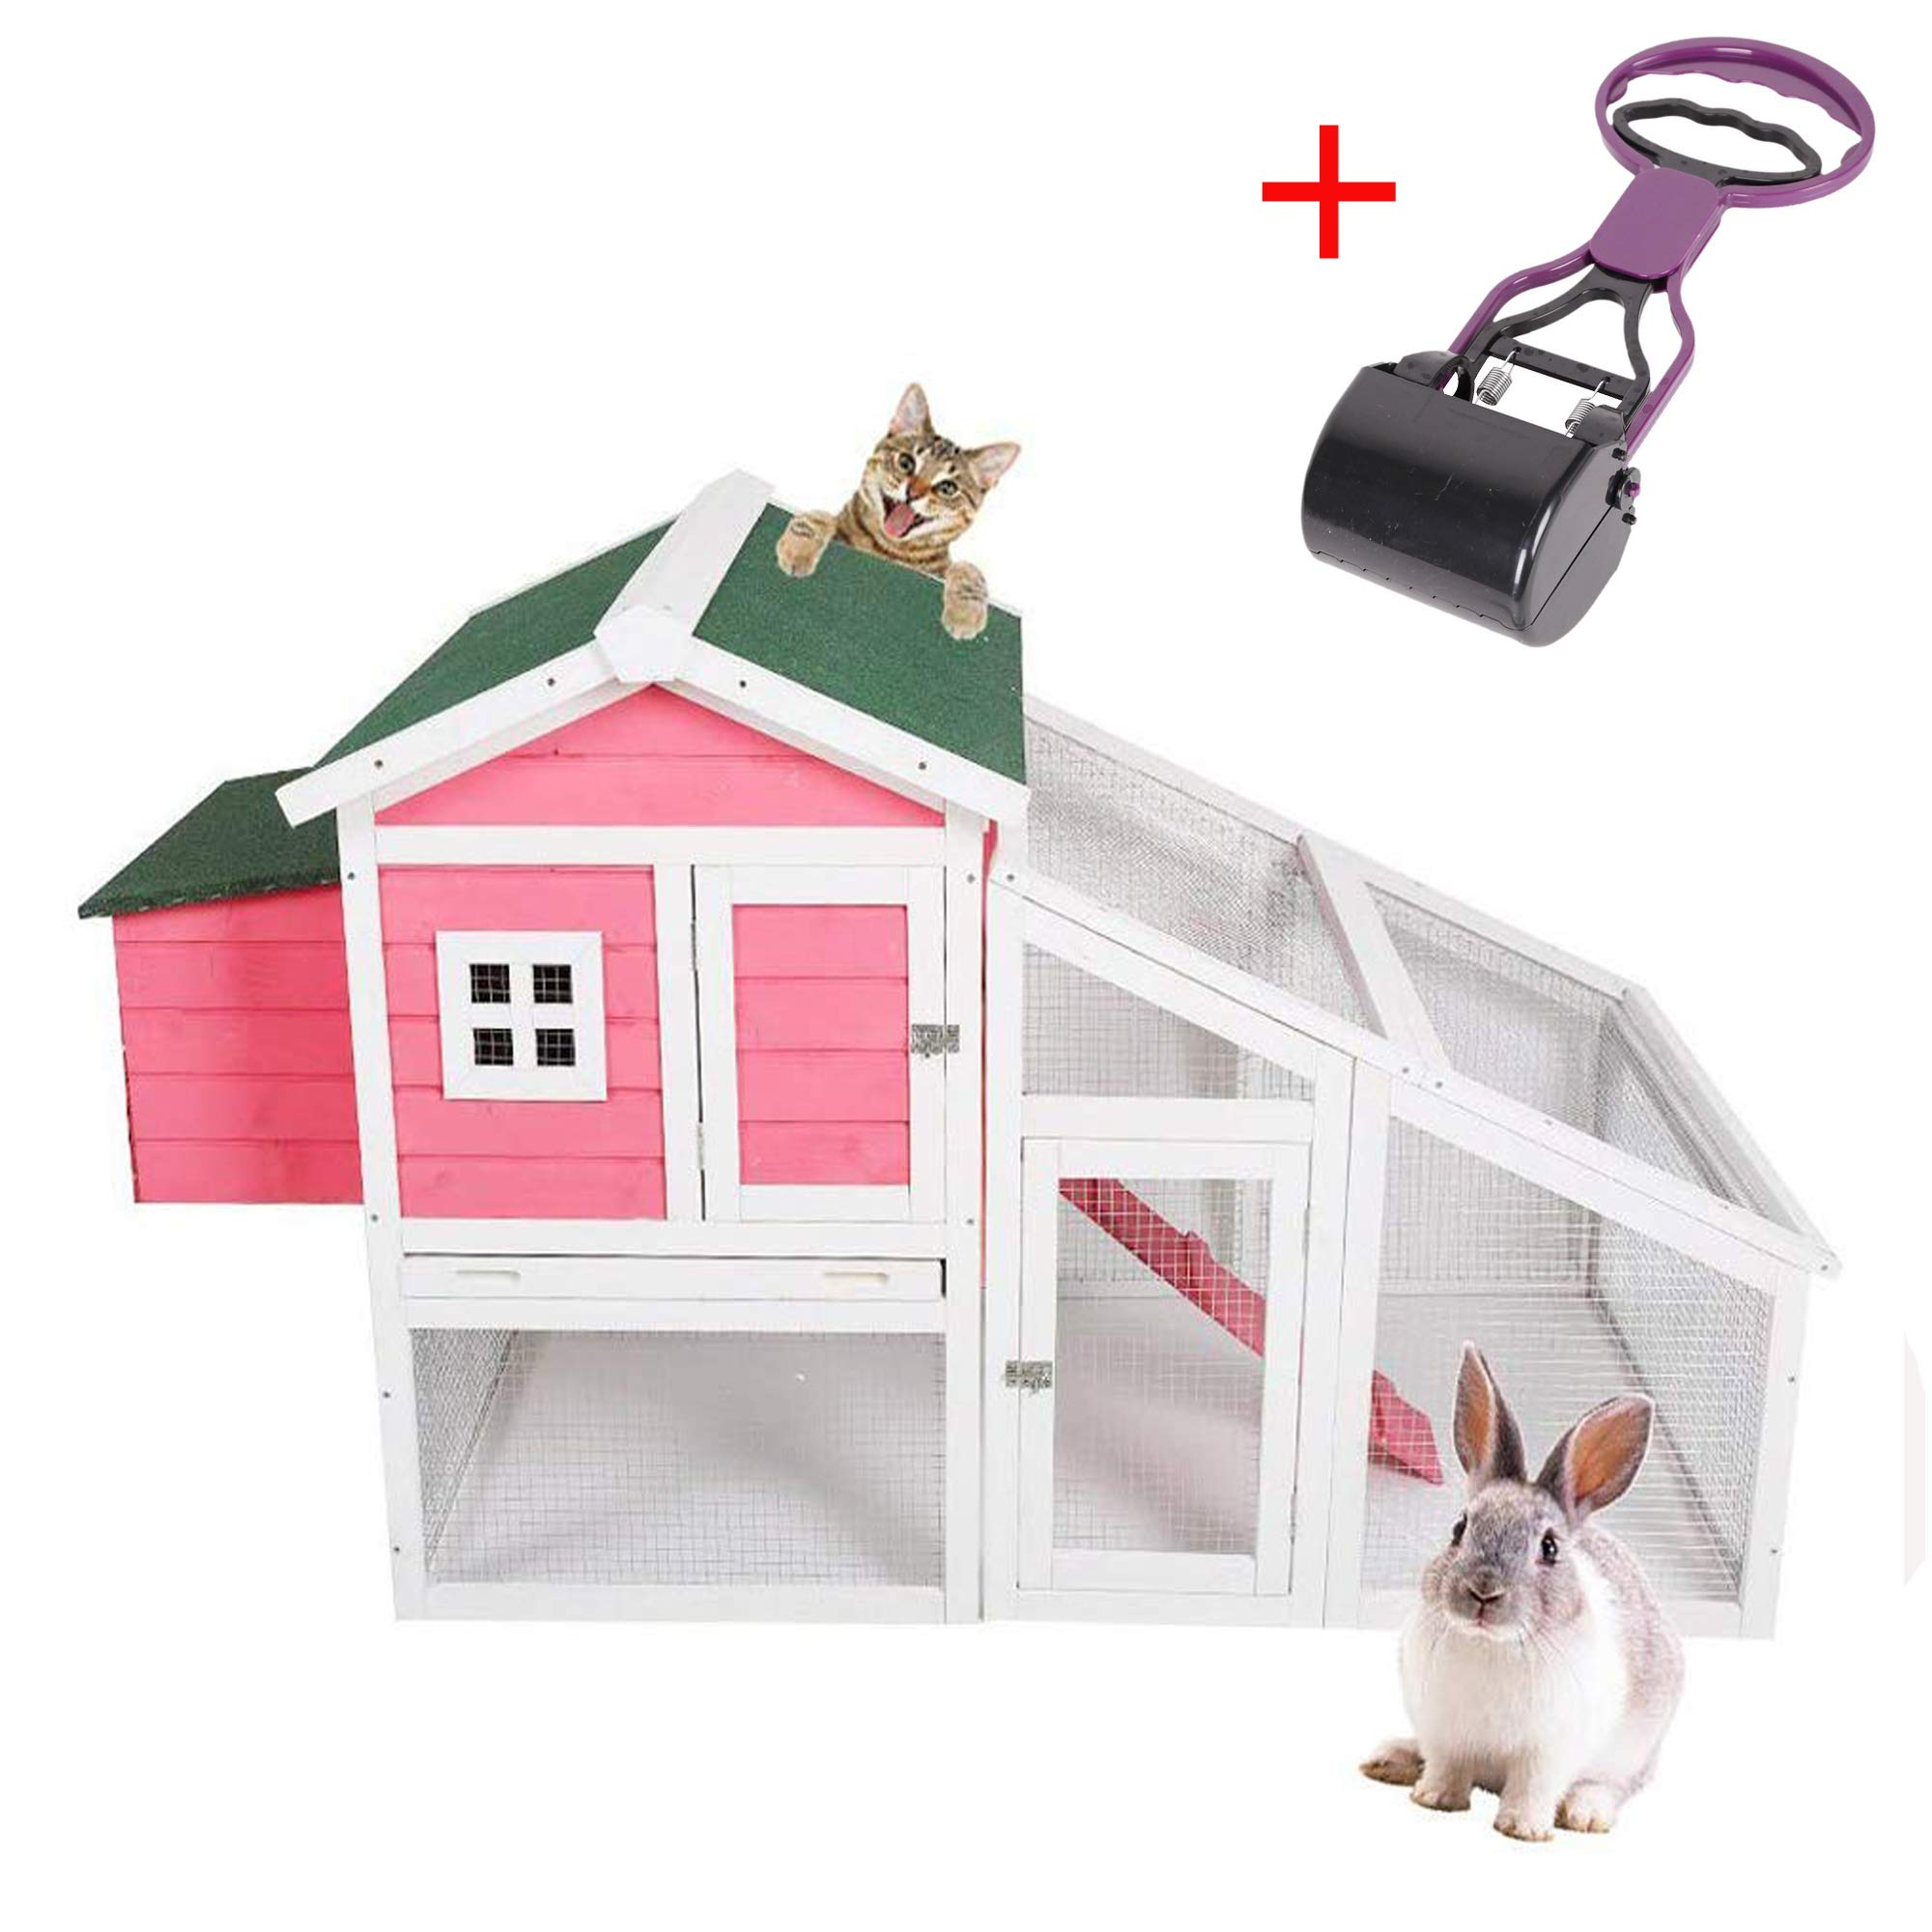 Livebest Pet Cage Rabbit Hutch Chicken Coop Cat House Large Space Indoor Outdoor Mesh Wire Wooden Small Animals Home Playpen for Bunny Kitty (Pink)